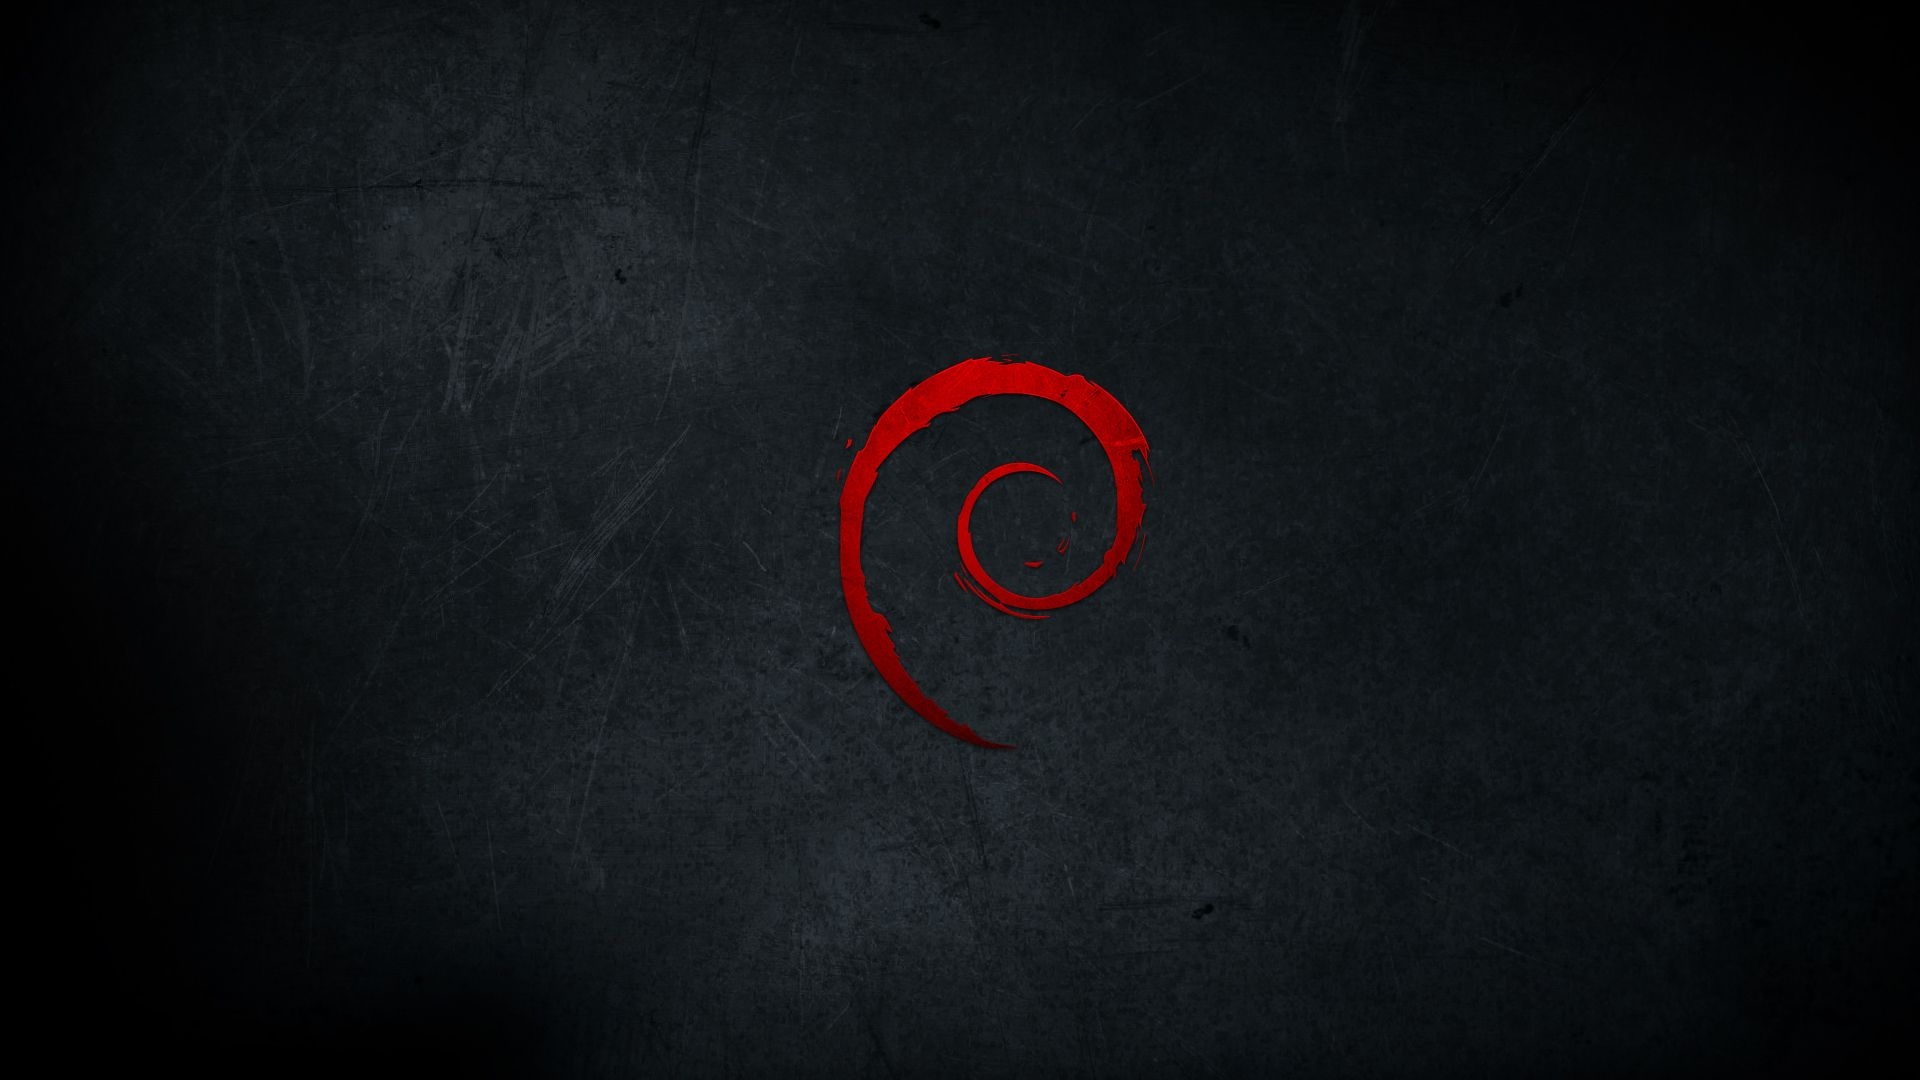 Debian wallpapers hd wallpapers pinterest wallpaper and gnome debian wallpapers voltagebd Image collections